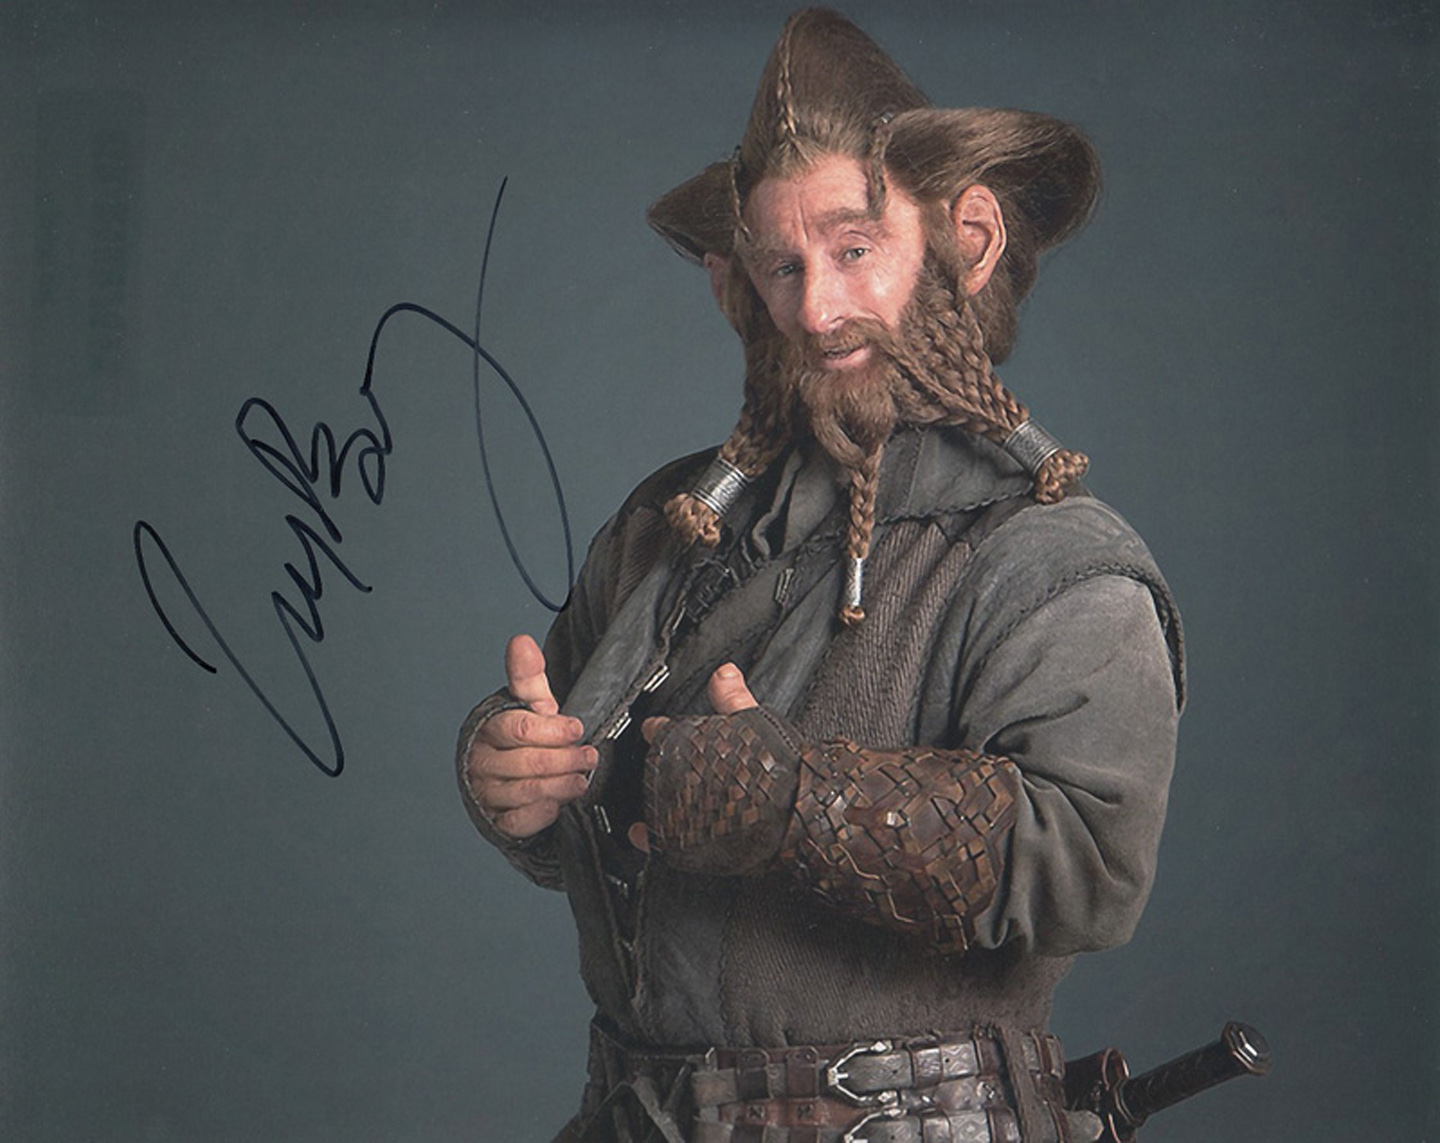 Blowout Sale! The Hobbit Jed Brophy hand signed 10x8 photo. This beautiful 10x8 hand signed photo